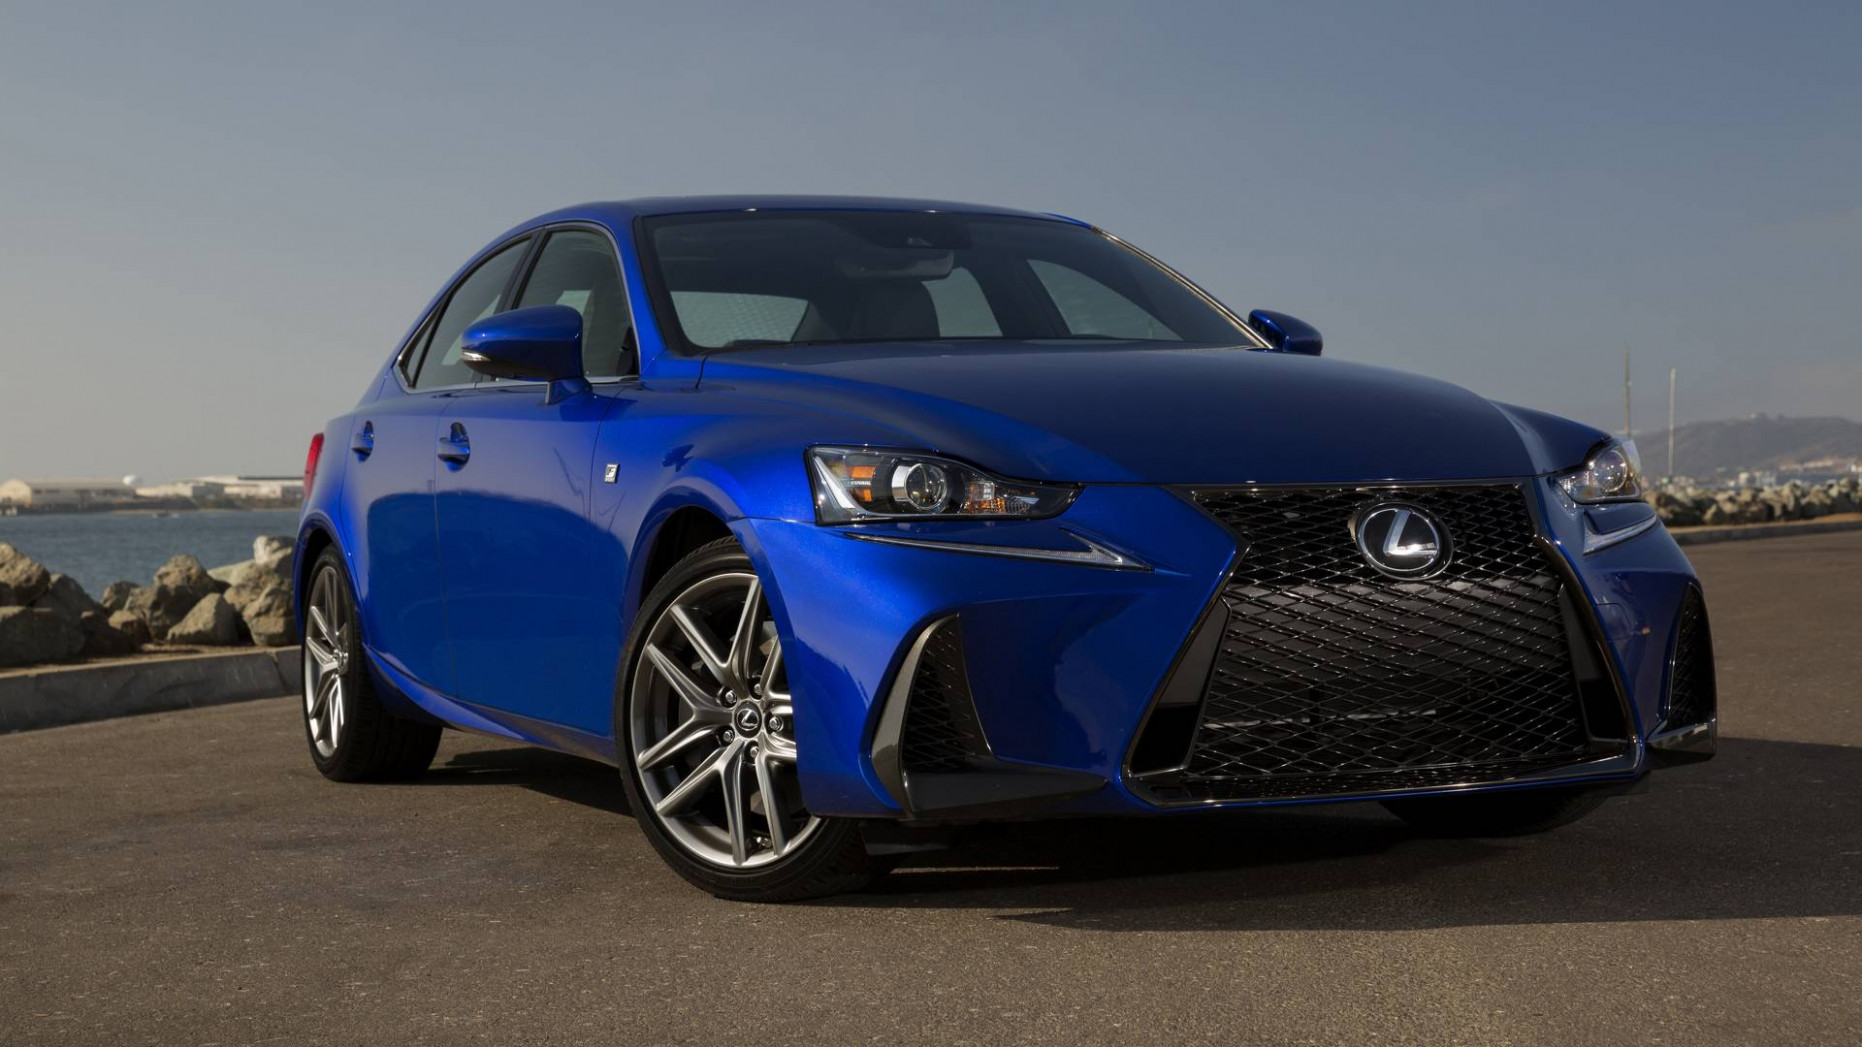 Exterior and Interior 2022 Lexus IS 250